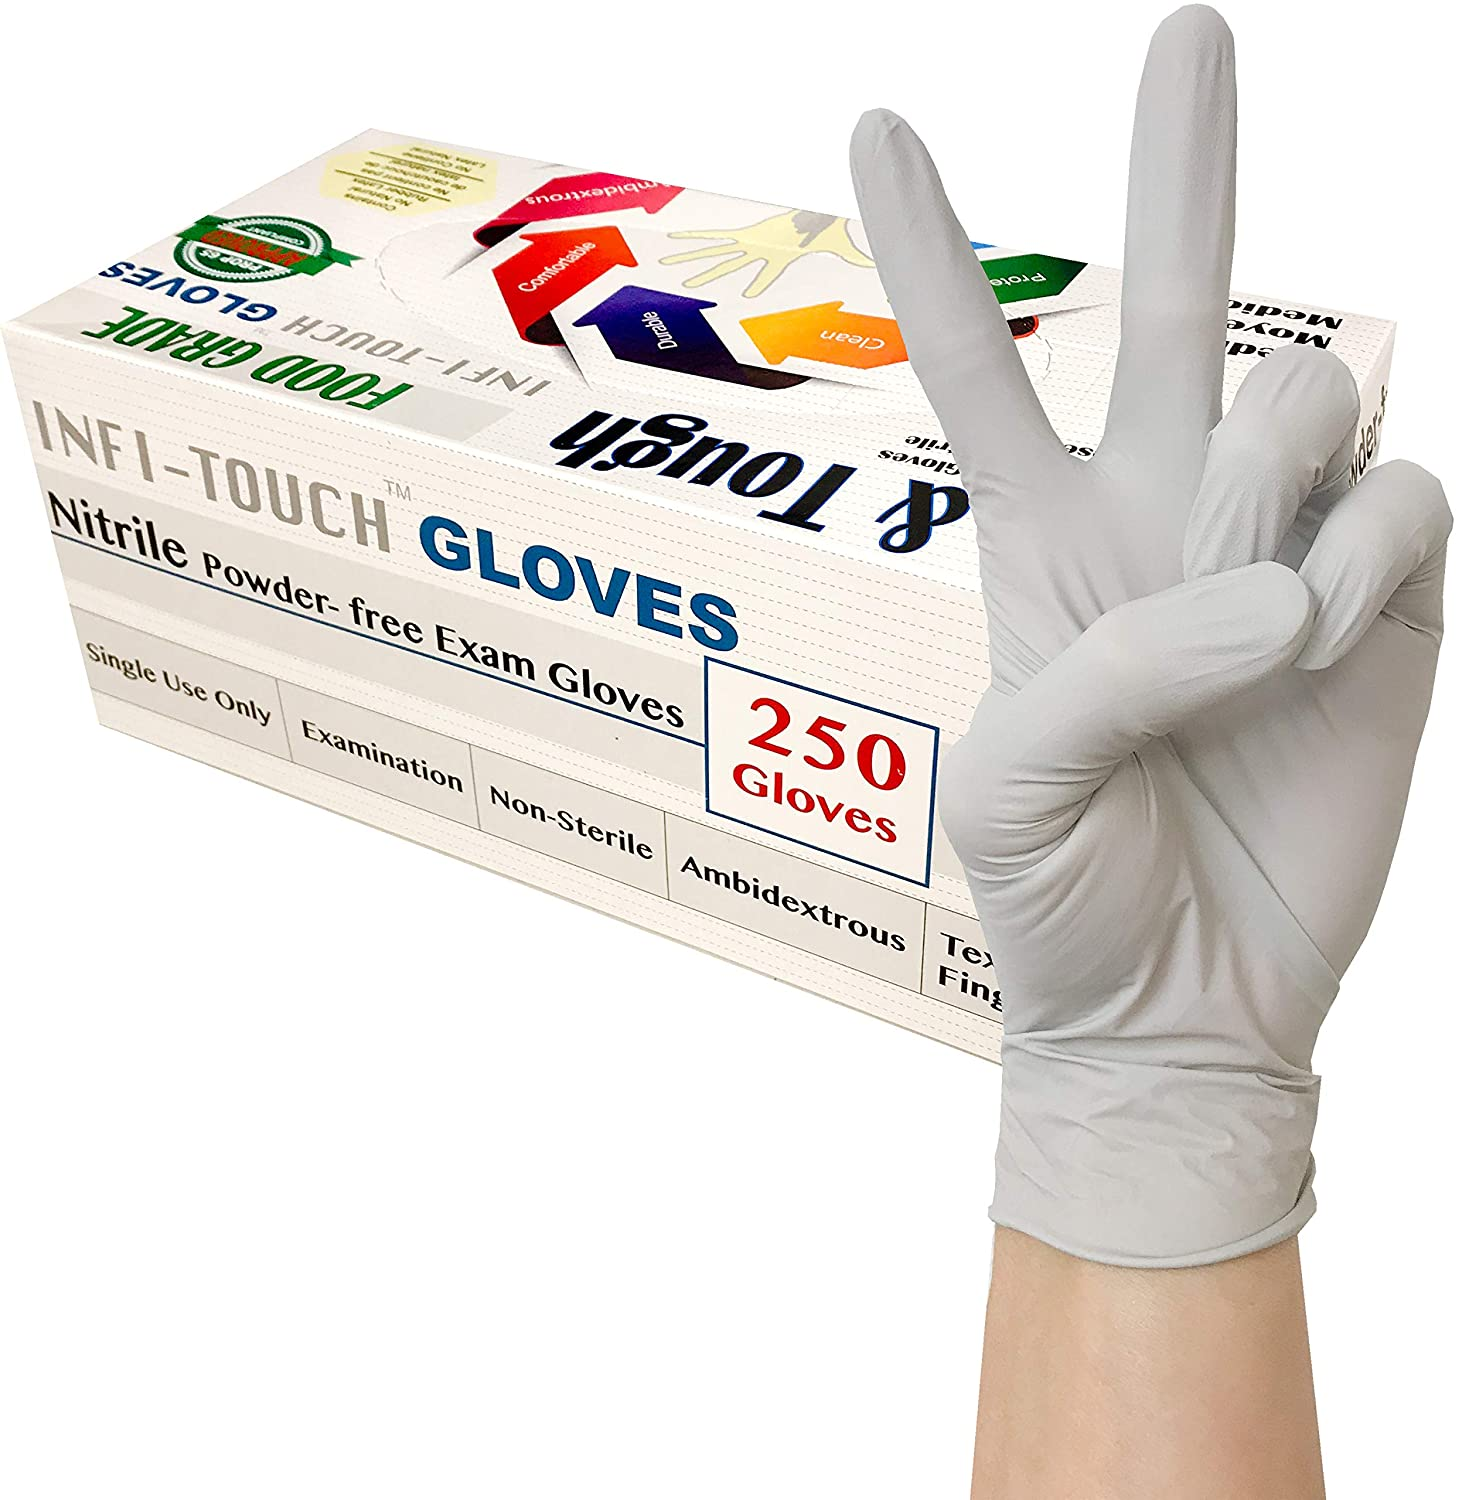 Infi-Touch - (250 Count) Food Safe - , Lite Duty Nitrile Gloves, Lite & Tough, Disposable Gloves